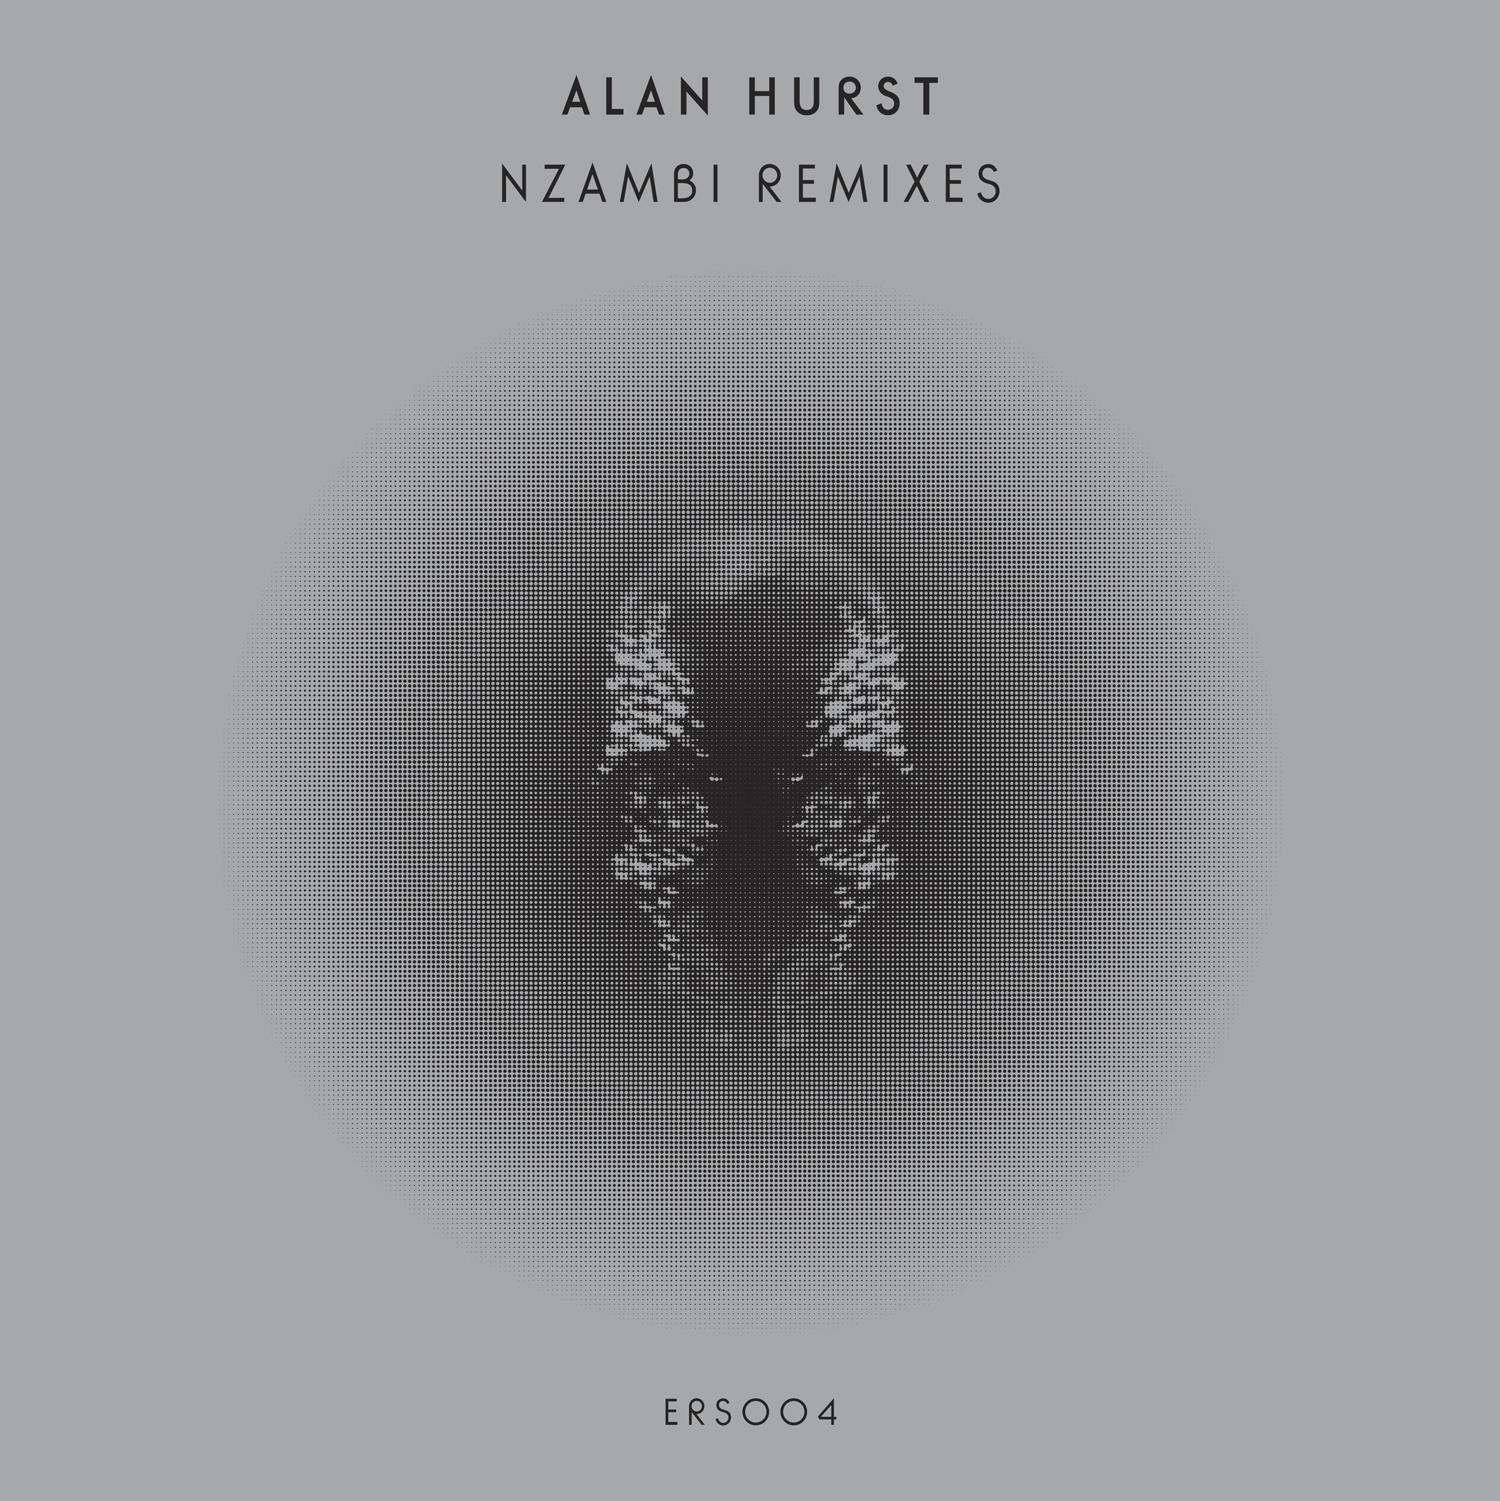 Alan Hurst Remixes